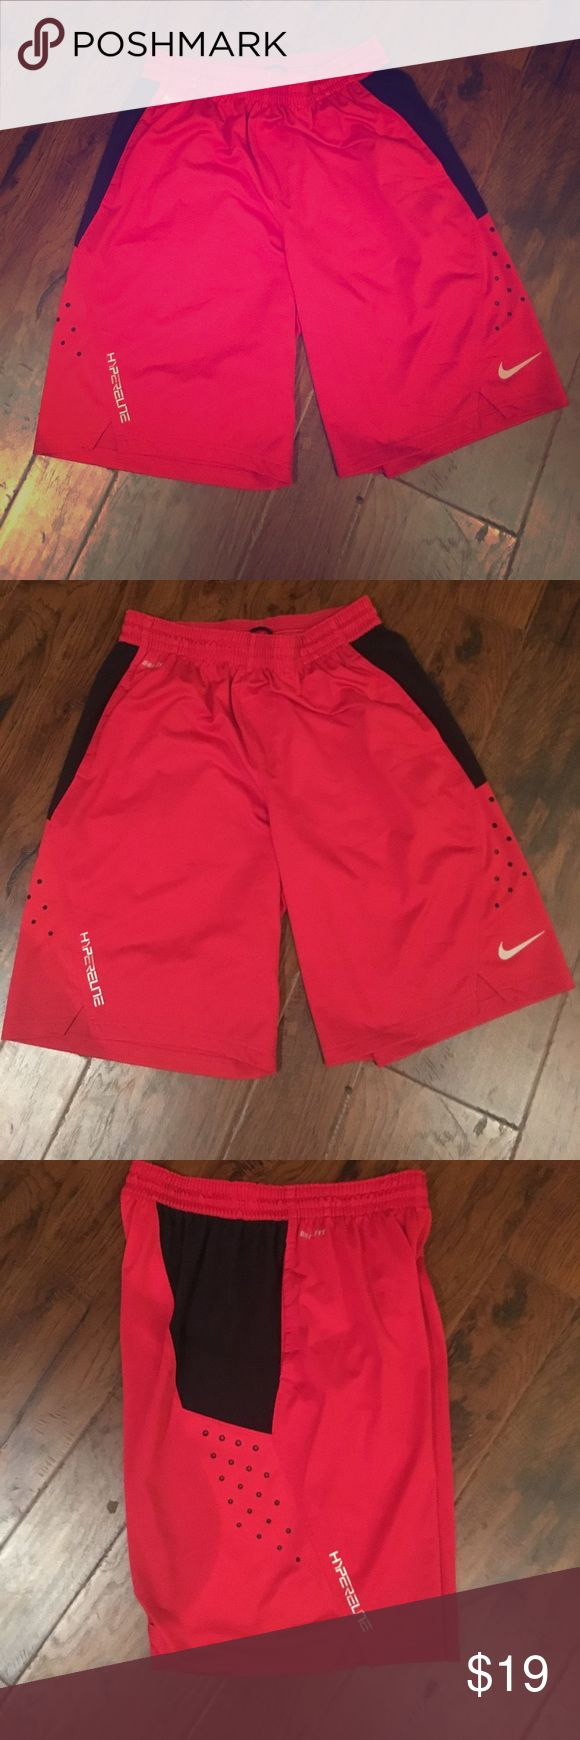 Men's Nike Dri-Fit Shorts Men's Nike Dri-Fit Shorts , red with black accents, Size L. Draw string, almost new condition. Nike Shorts Athletic